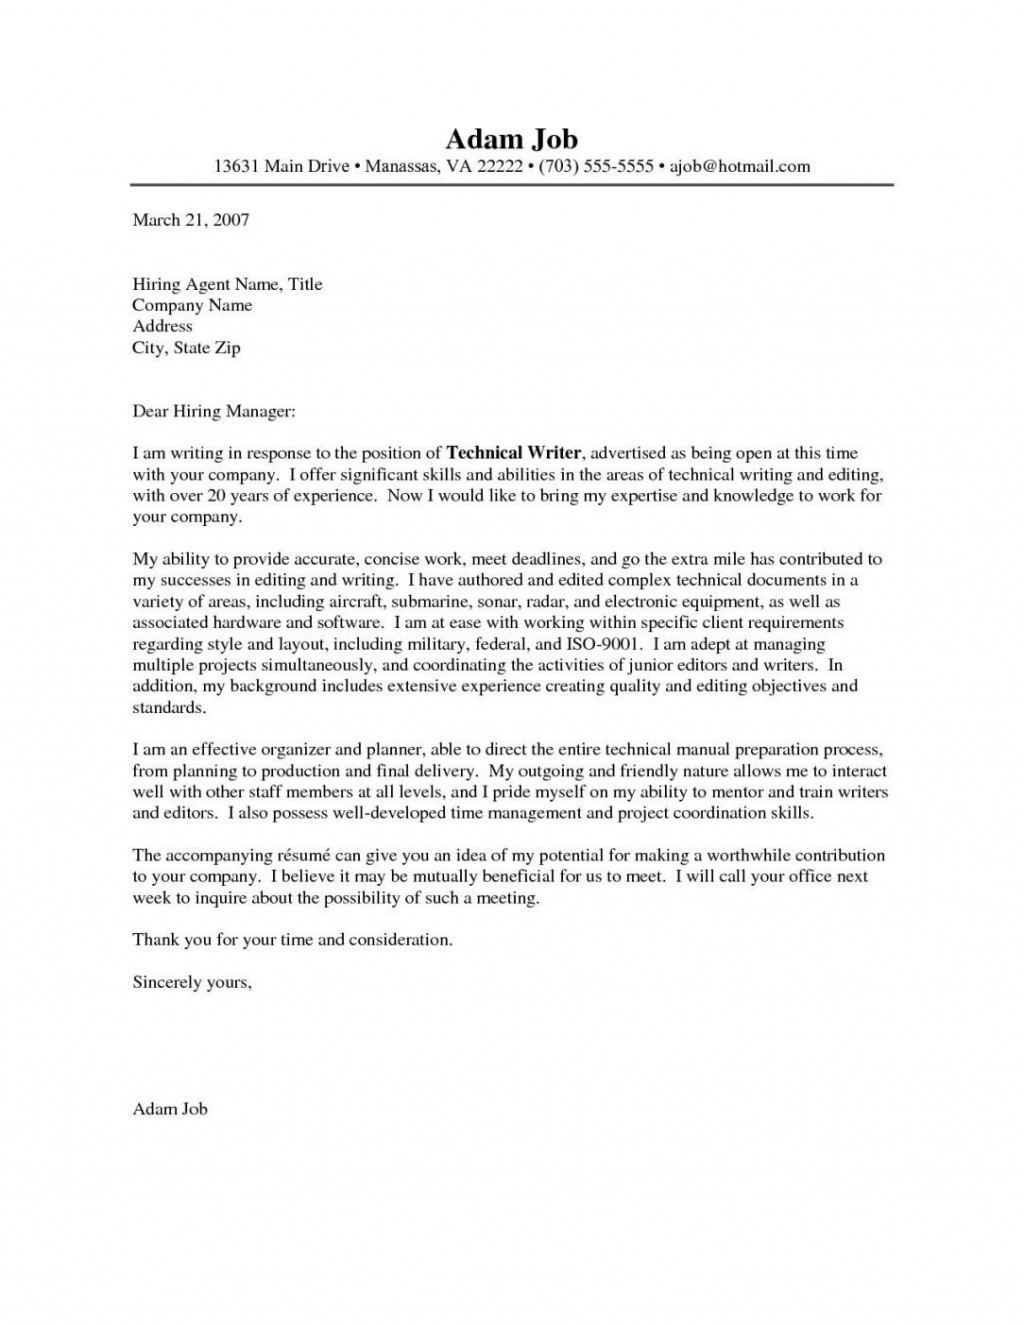 002 Imposing Cover Letter Writing Sample Photo  Example For Content Job ResumeLarge